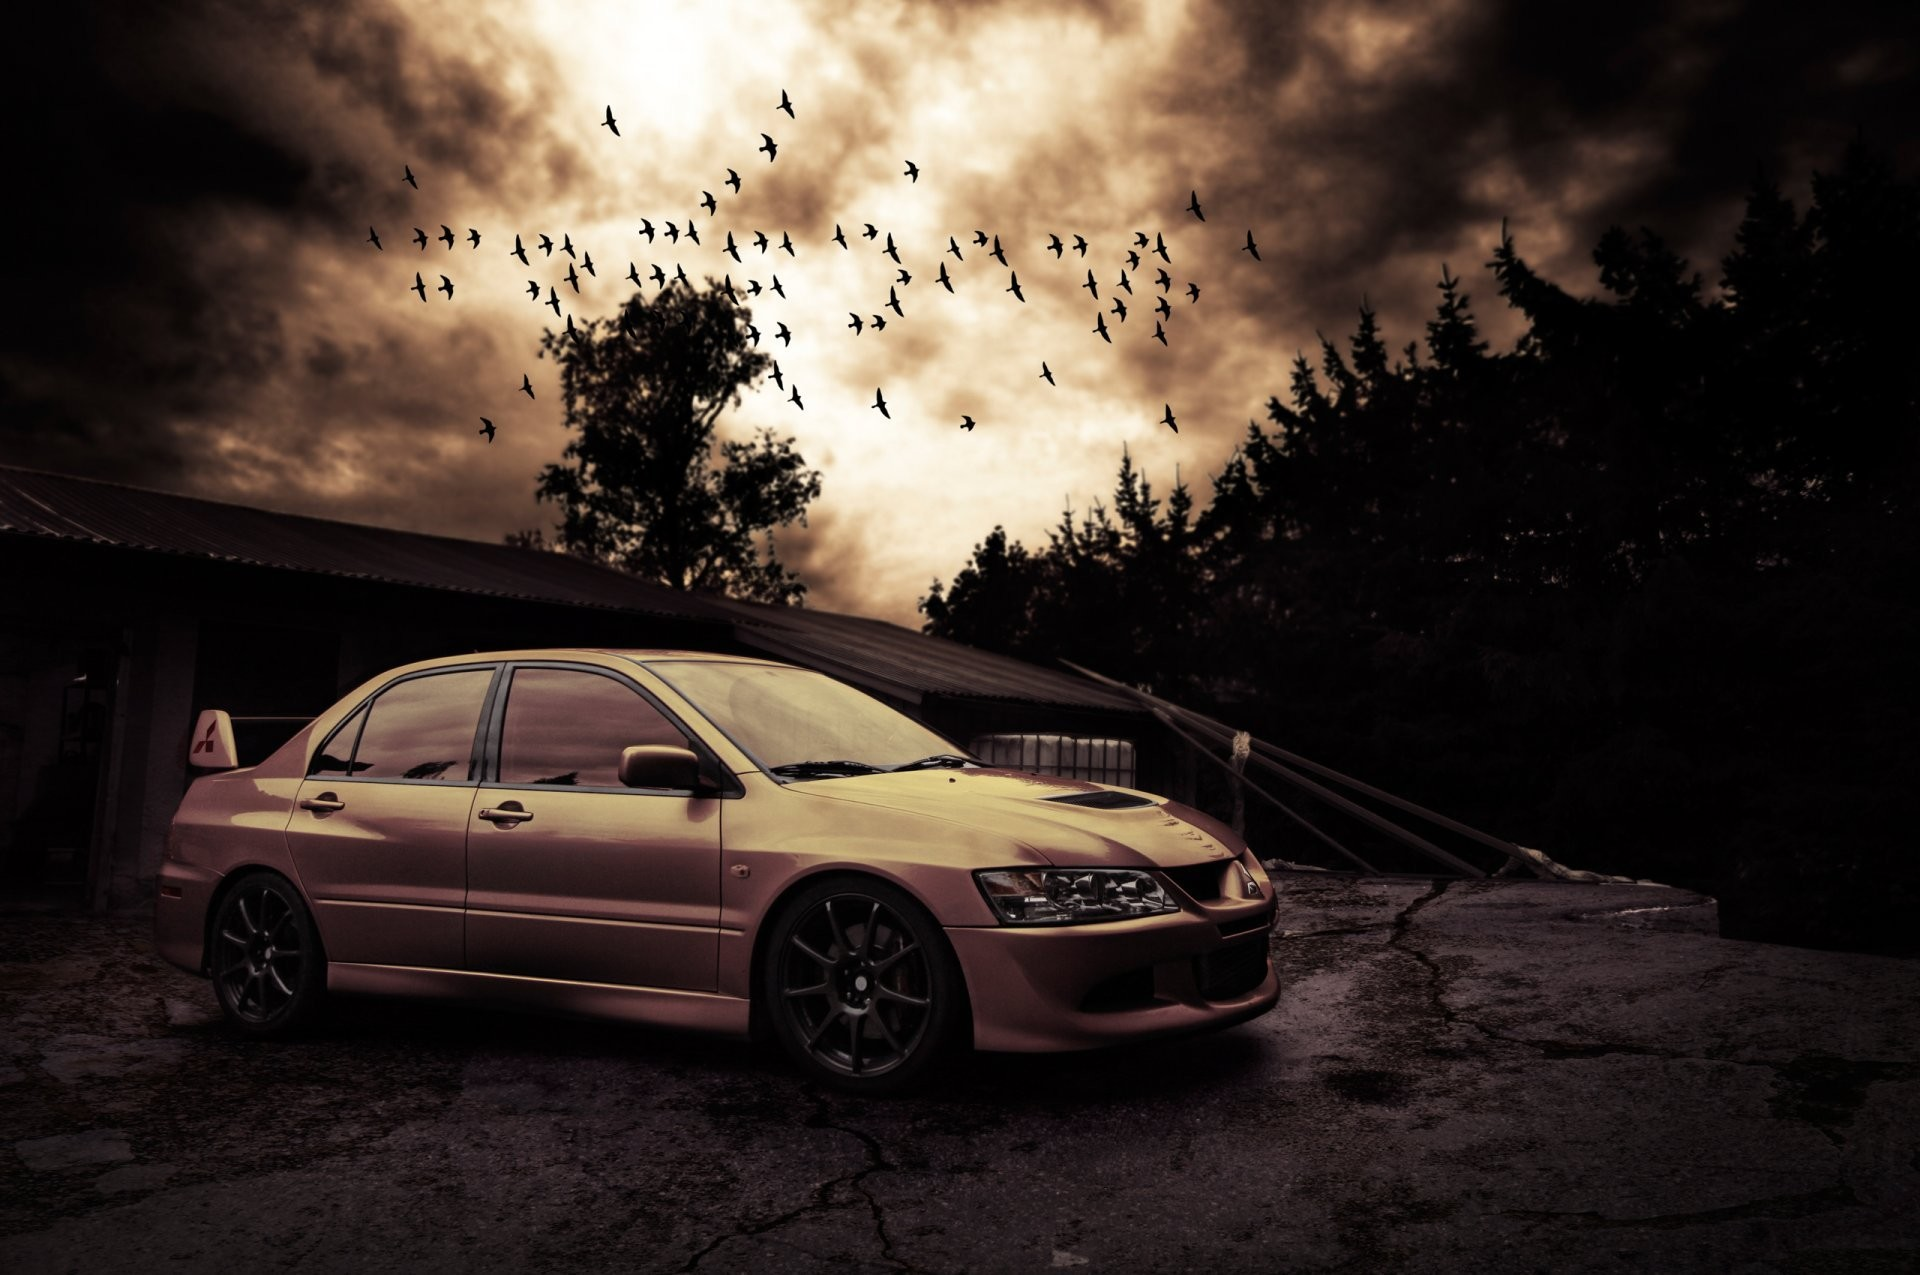 … mitsubishi lancer evo viii birds night hd wallpaper …